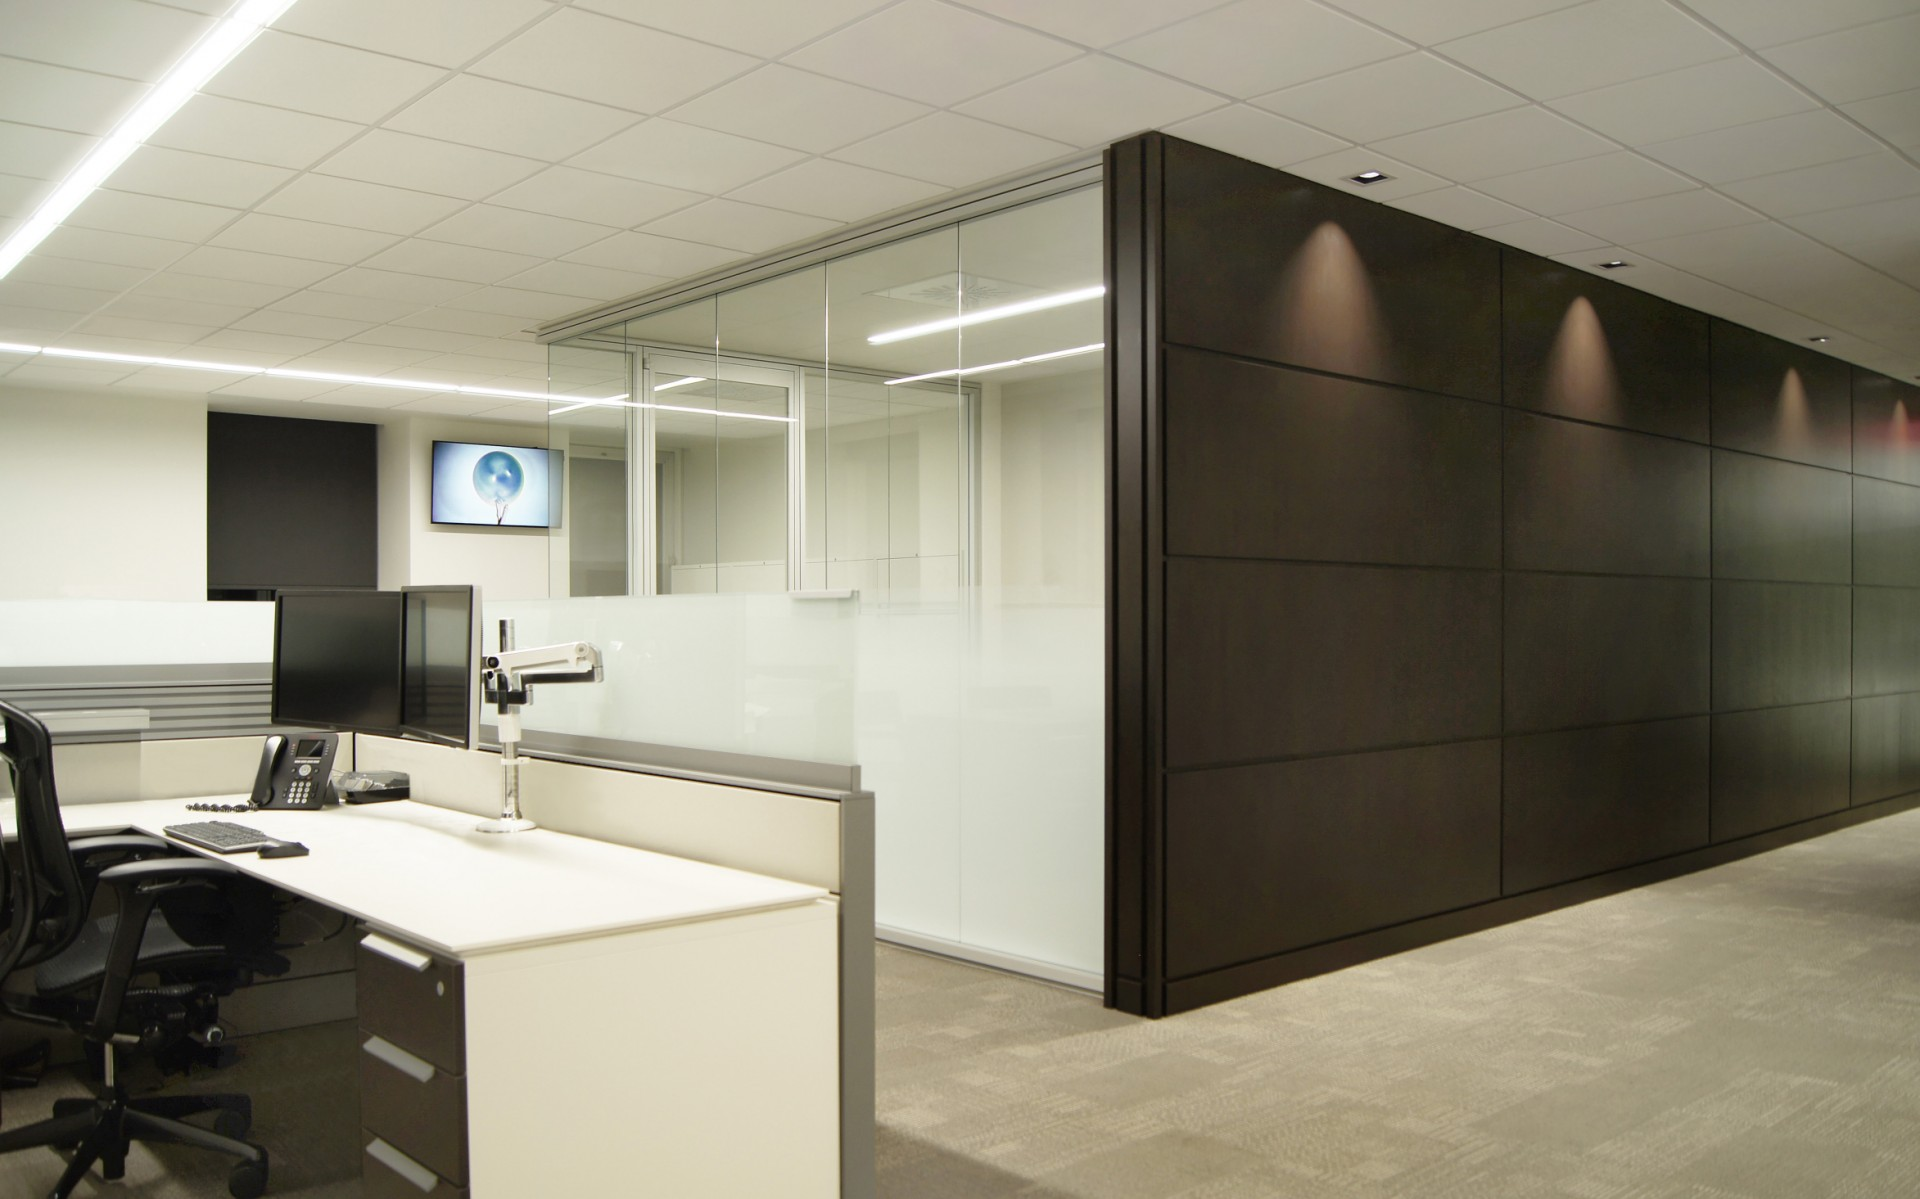 Leclerc Architecture + Design Group used Lumenline LED luminaires in 3500K, altering the size, mounting and installation for each space.